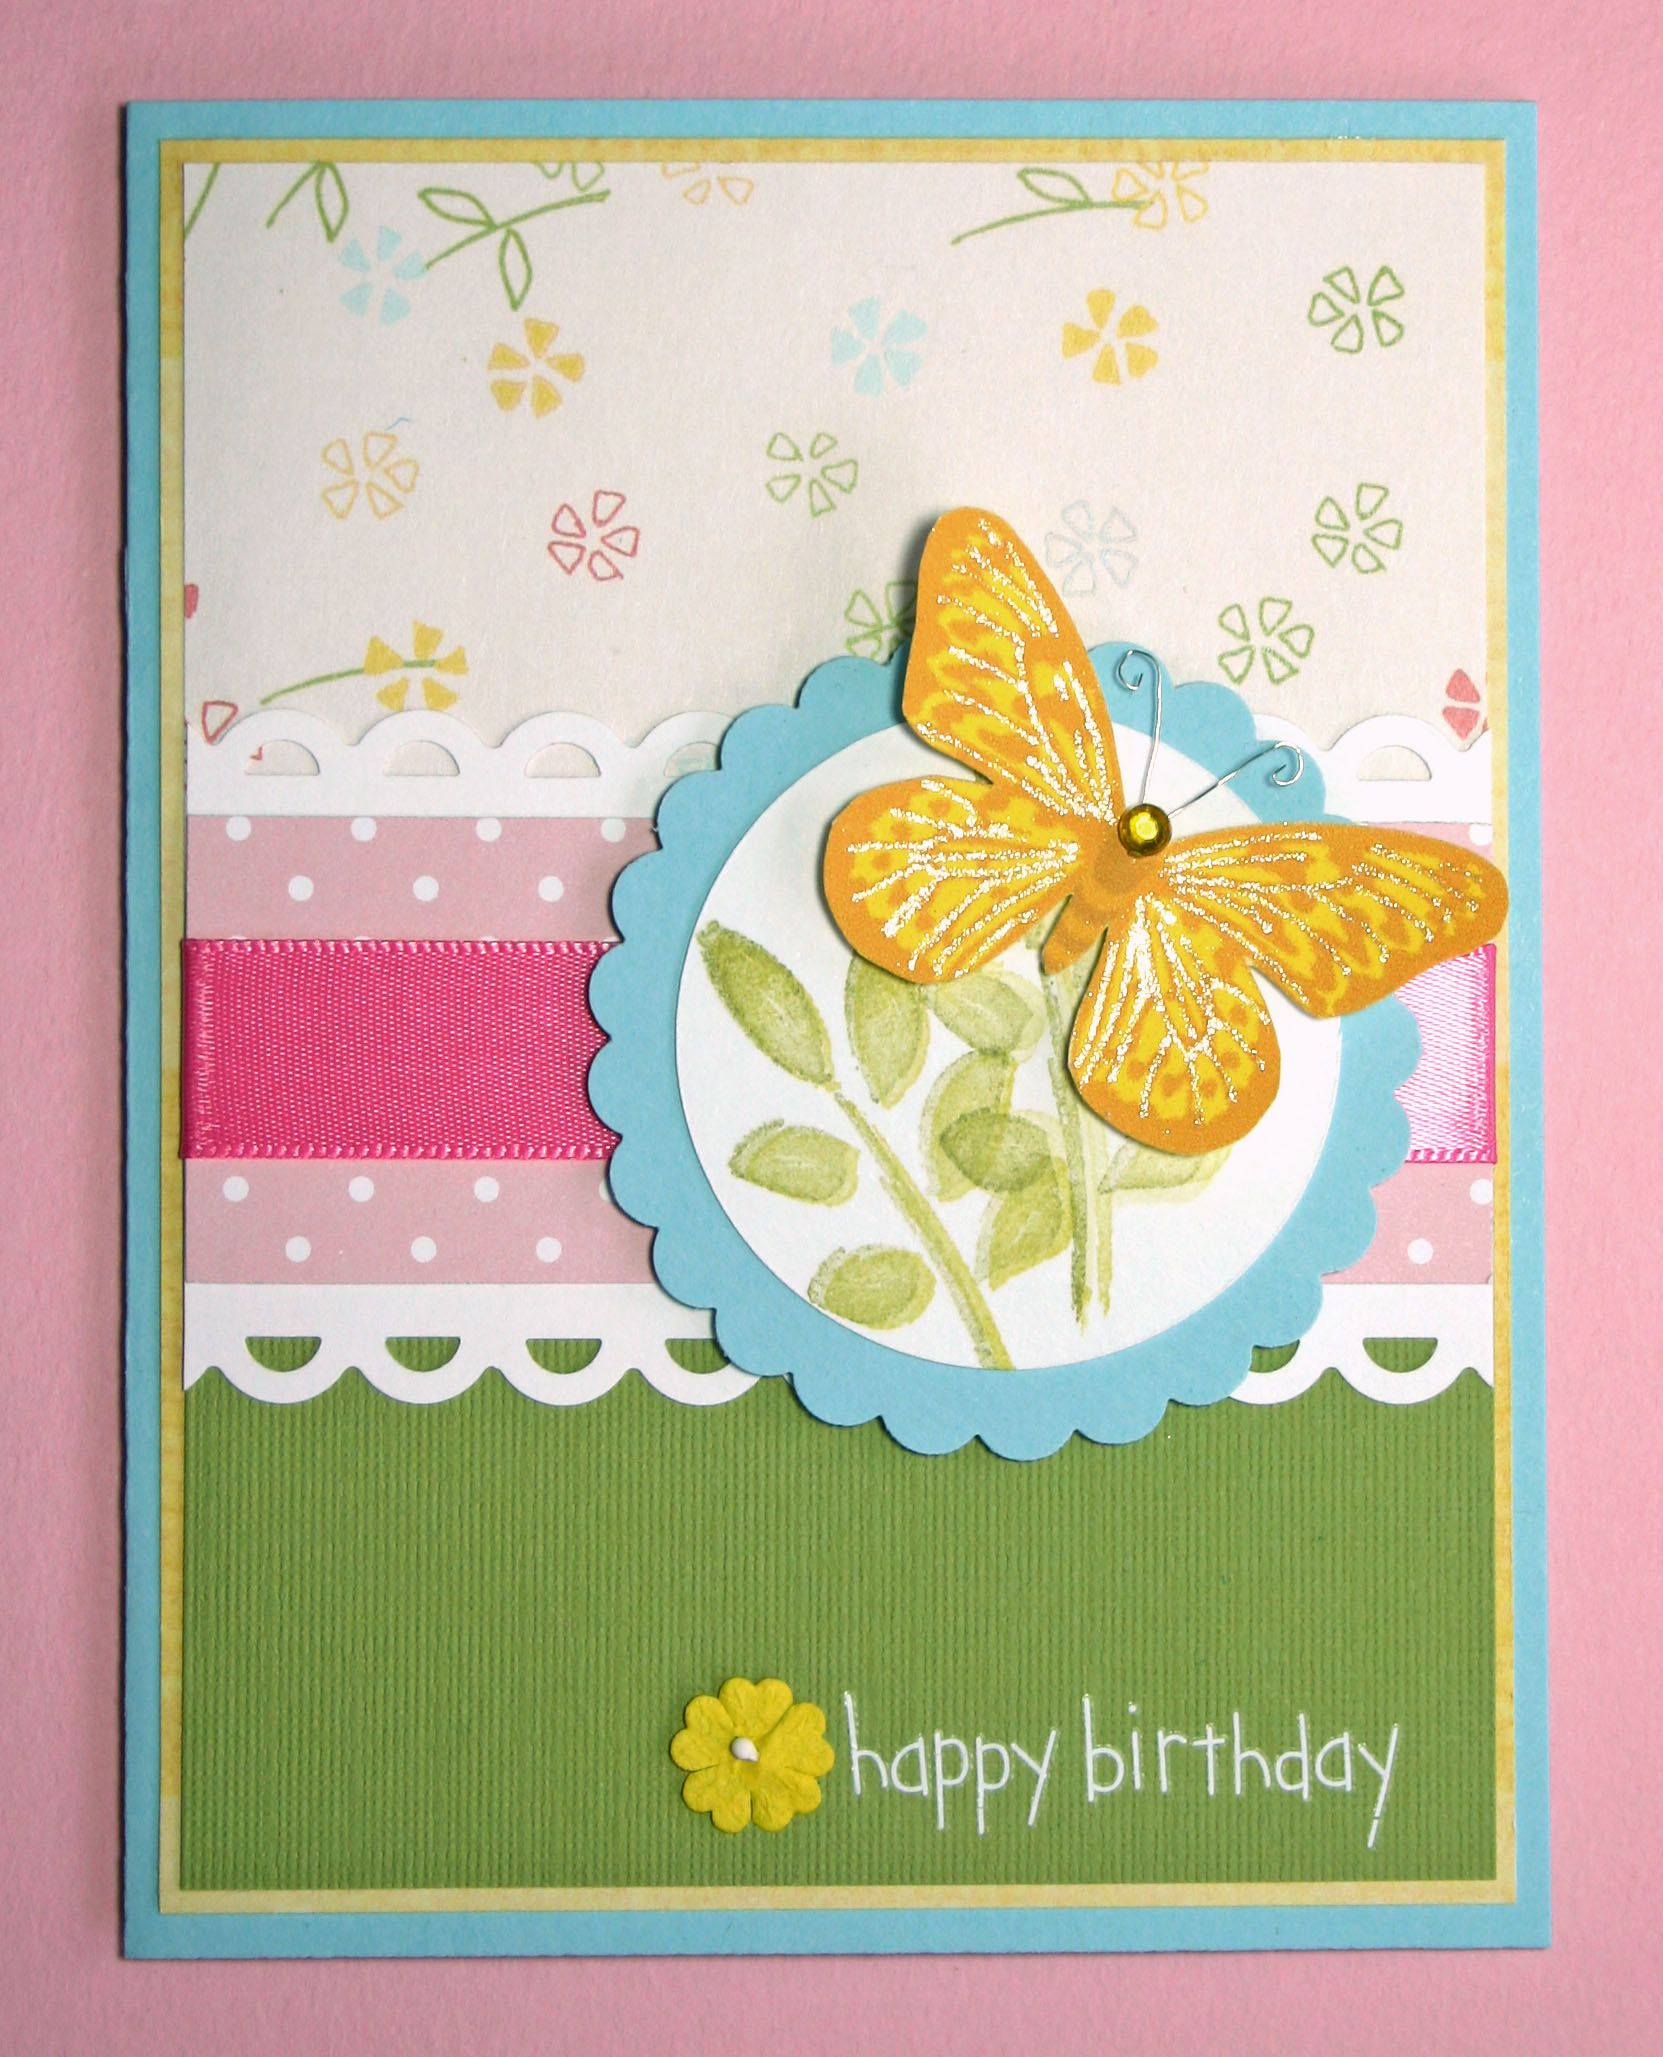 Handmade card happy birthday butterfly family friends homemade handmade card happy birthday butterfly family friends in crafts handcrafted finished pieces greeting cards gift tags kristyandbryce Images